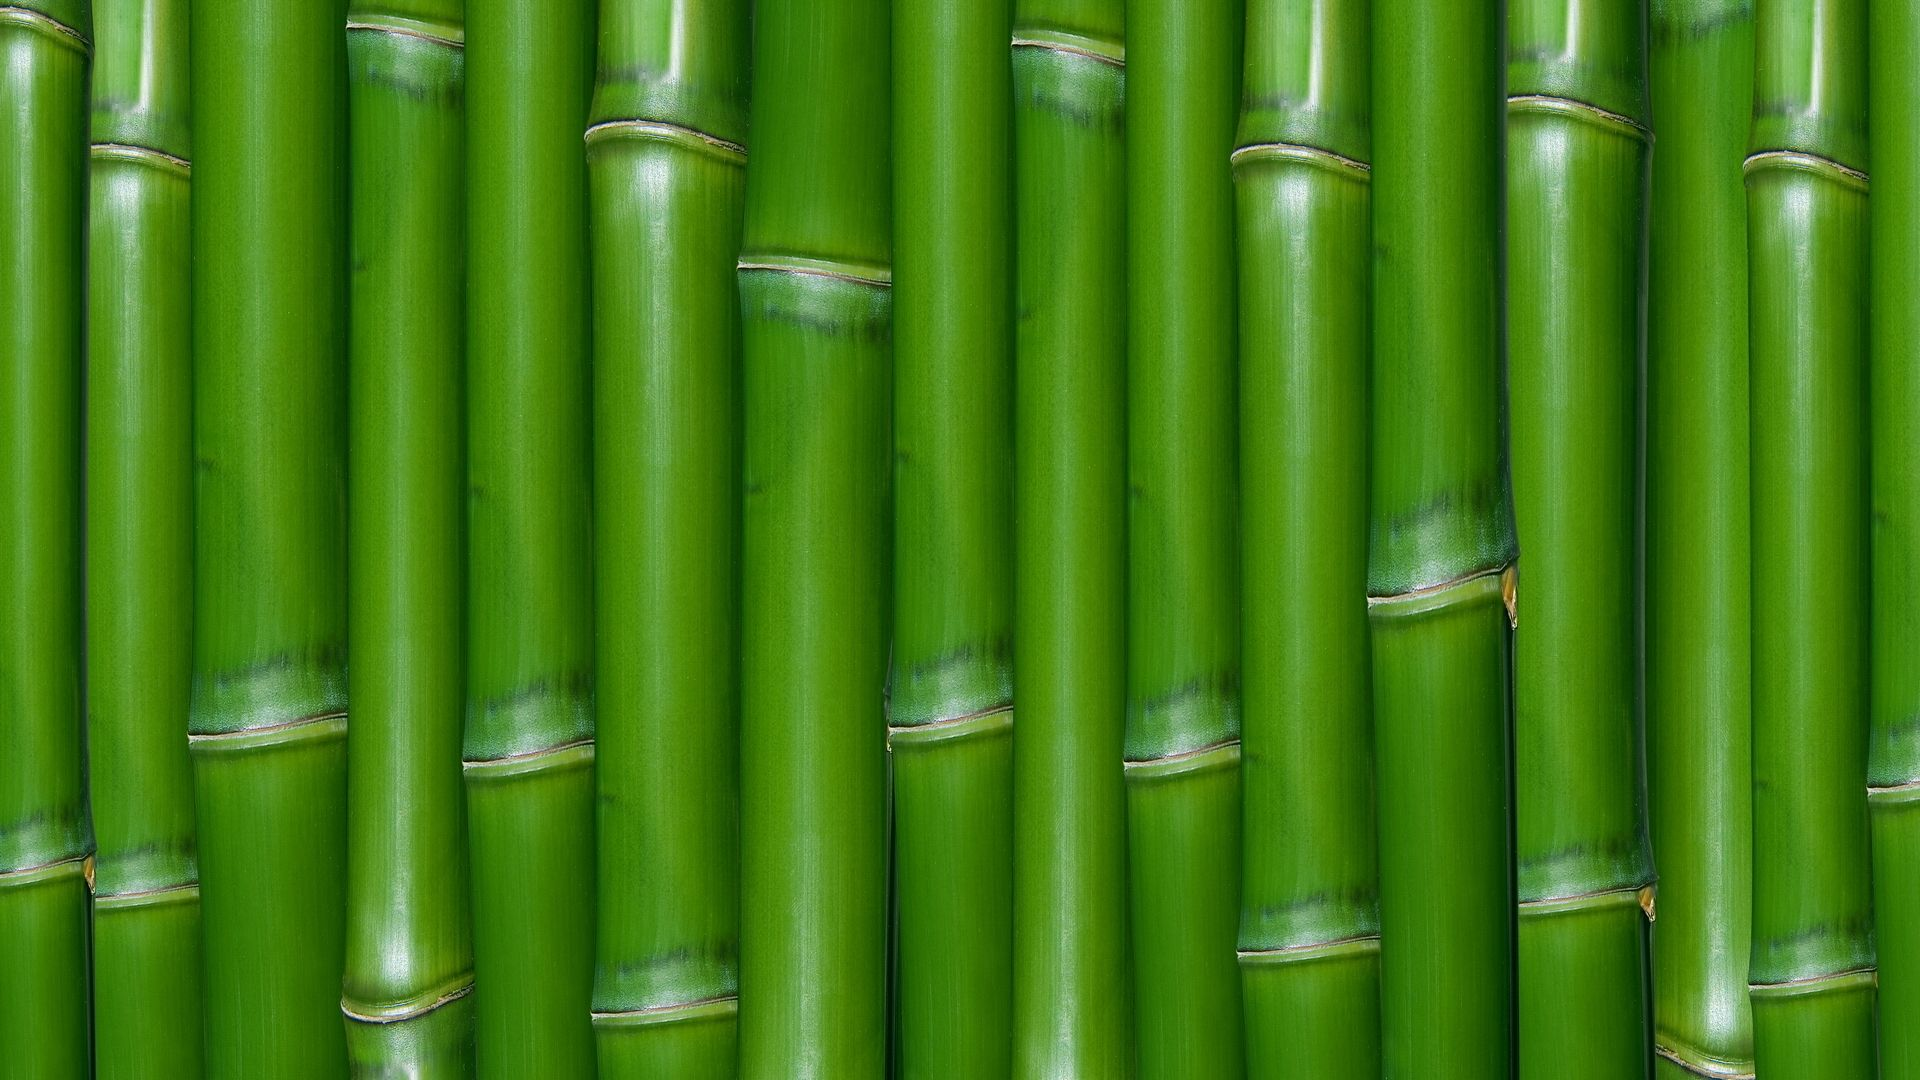 Fengshui  Bamboos Texture And Color With Sleek, Modern Designs,